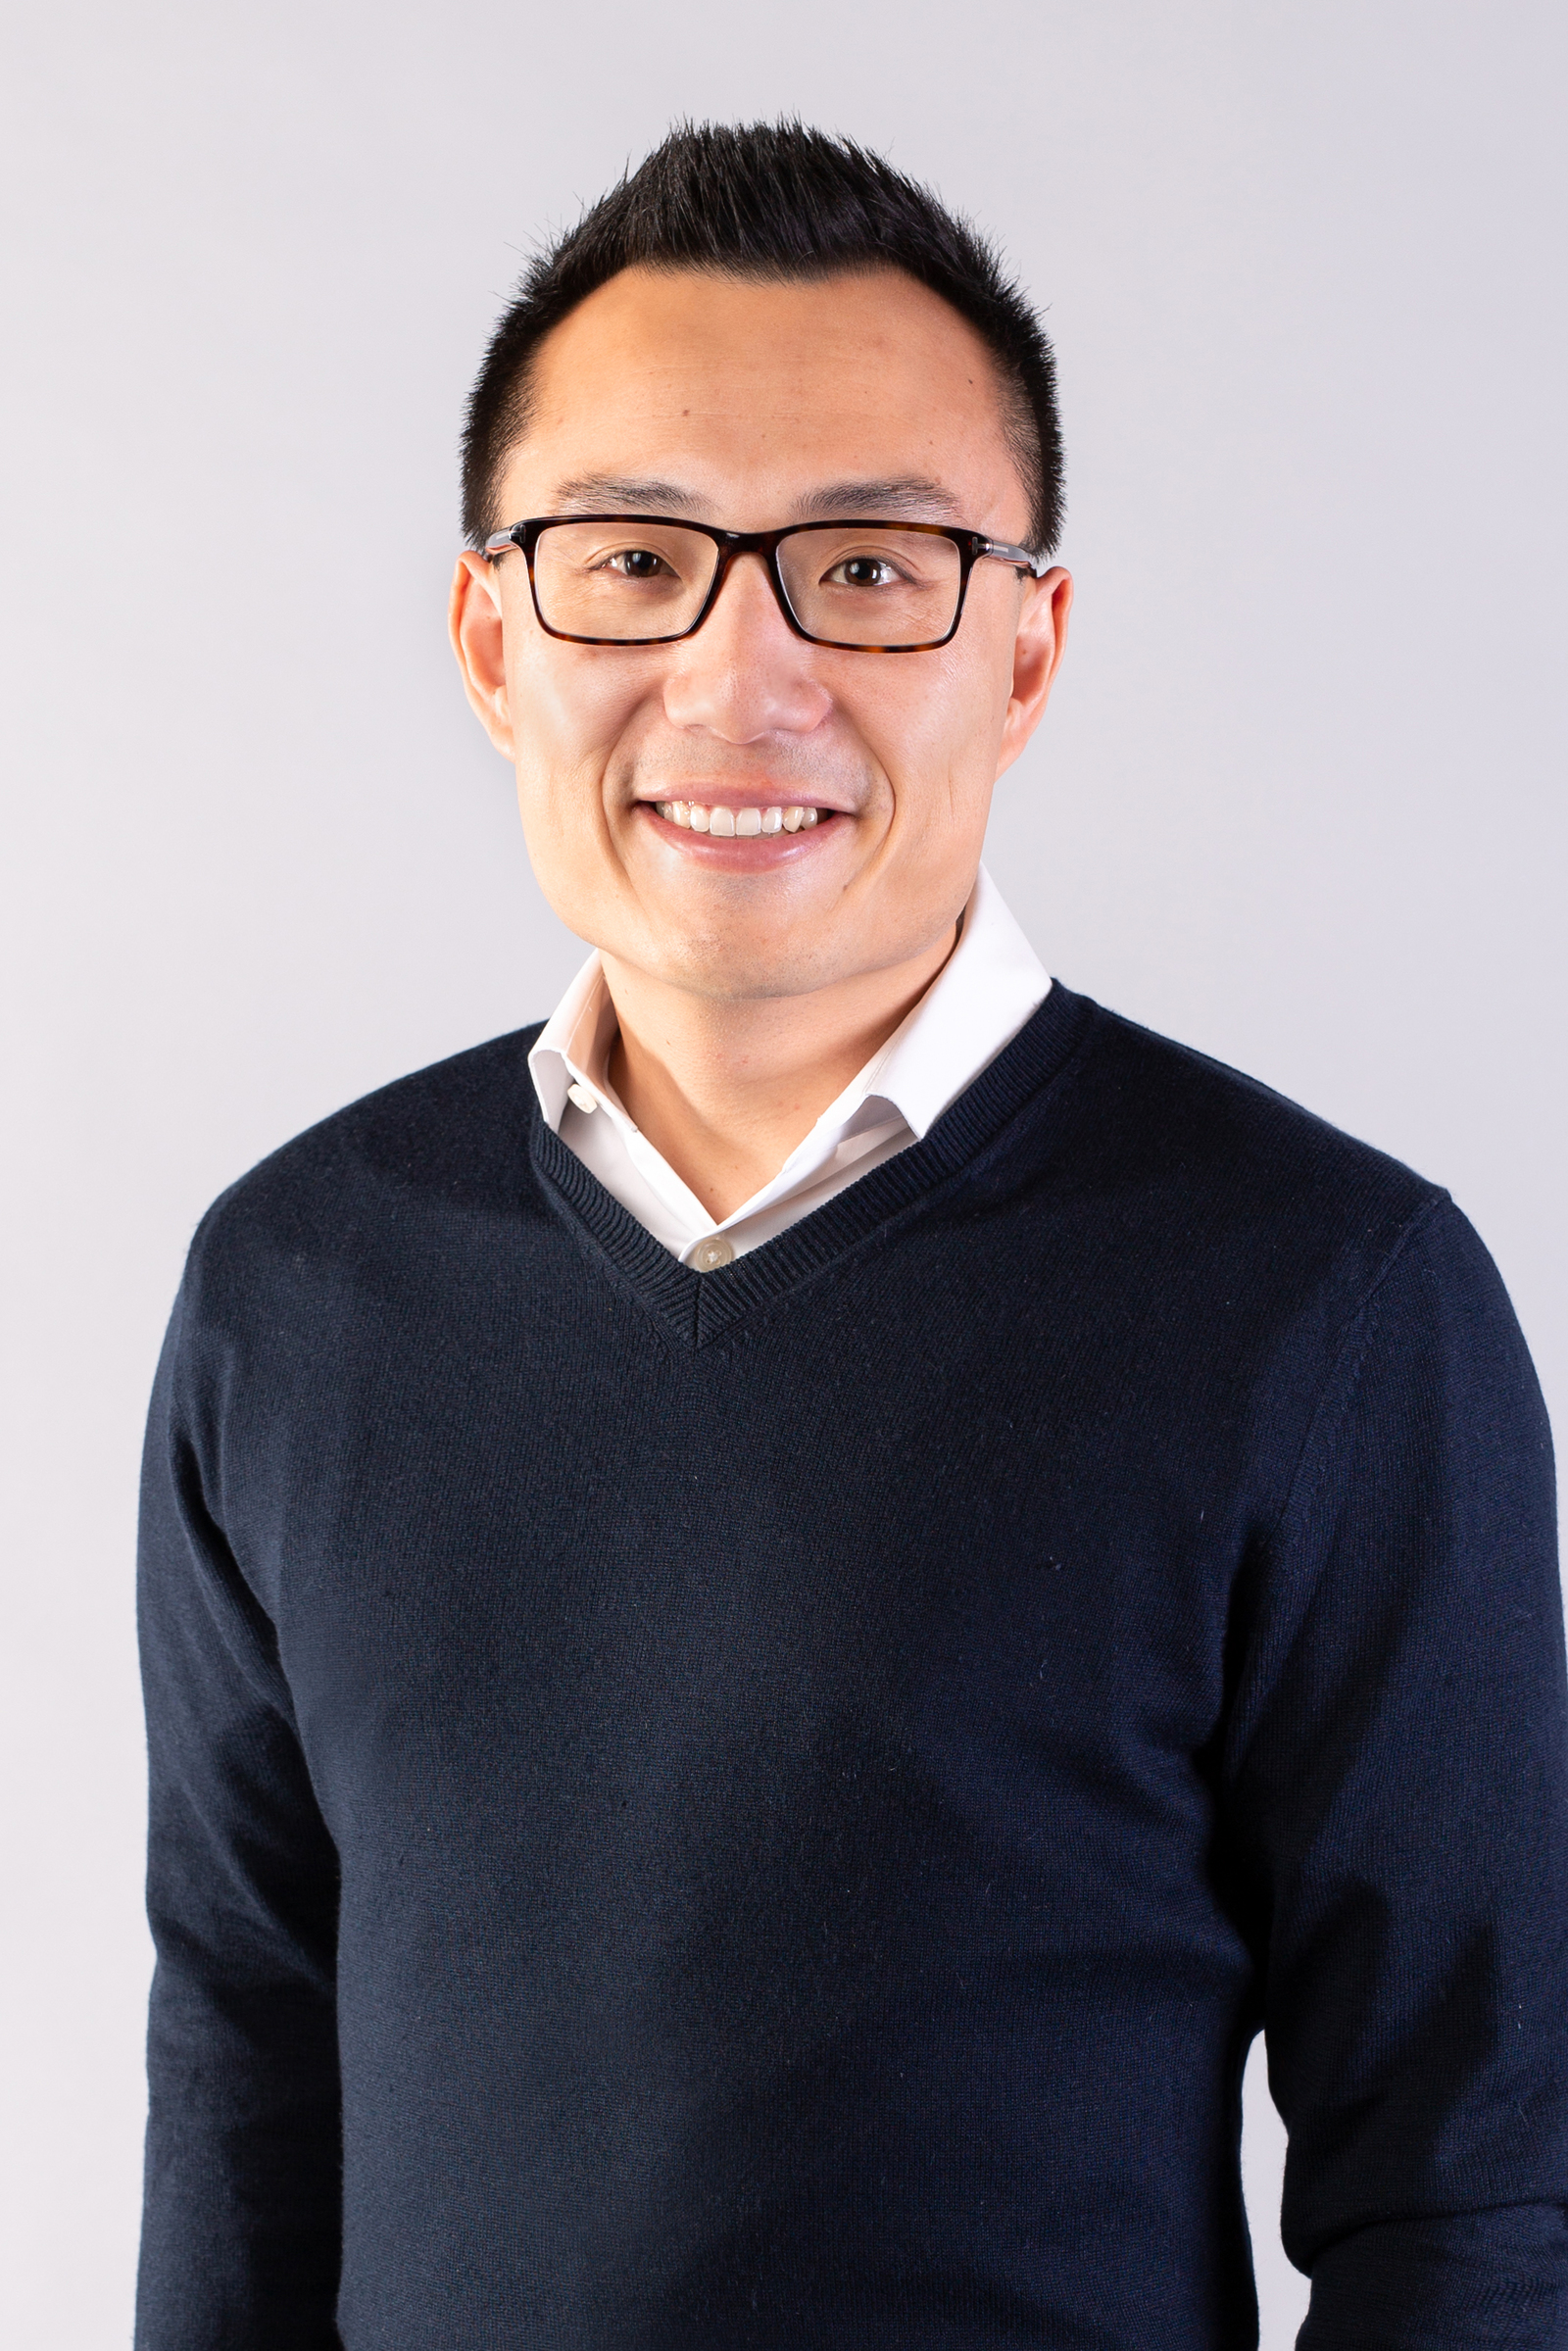 A photo of Tony Xu who is CEO of DoorDash